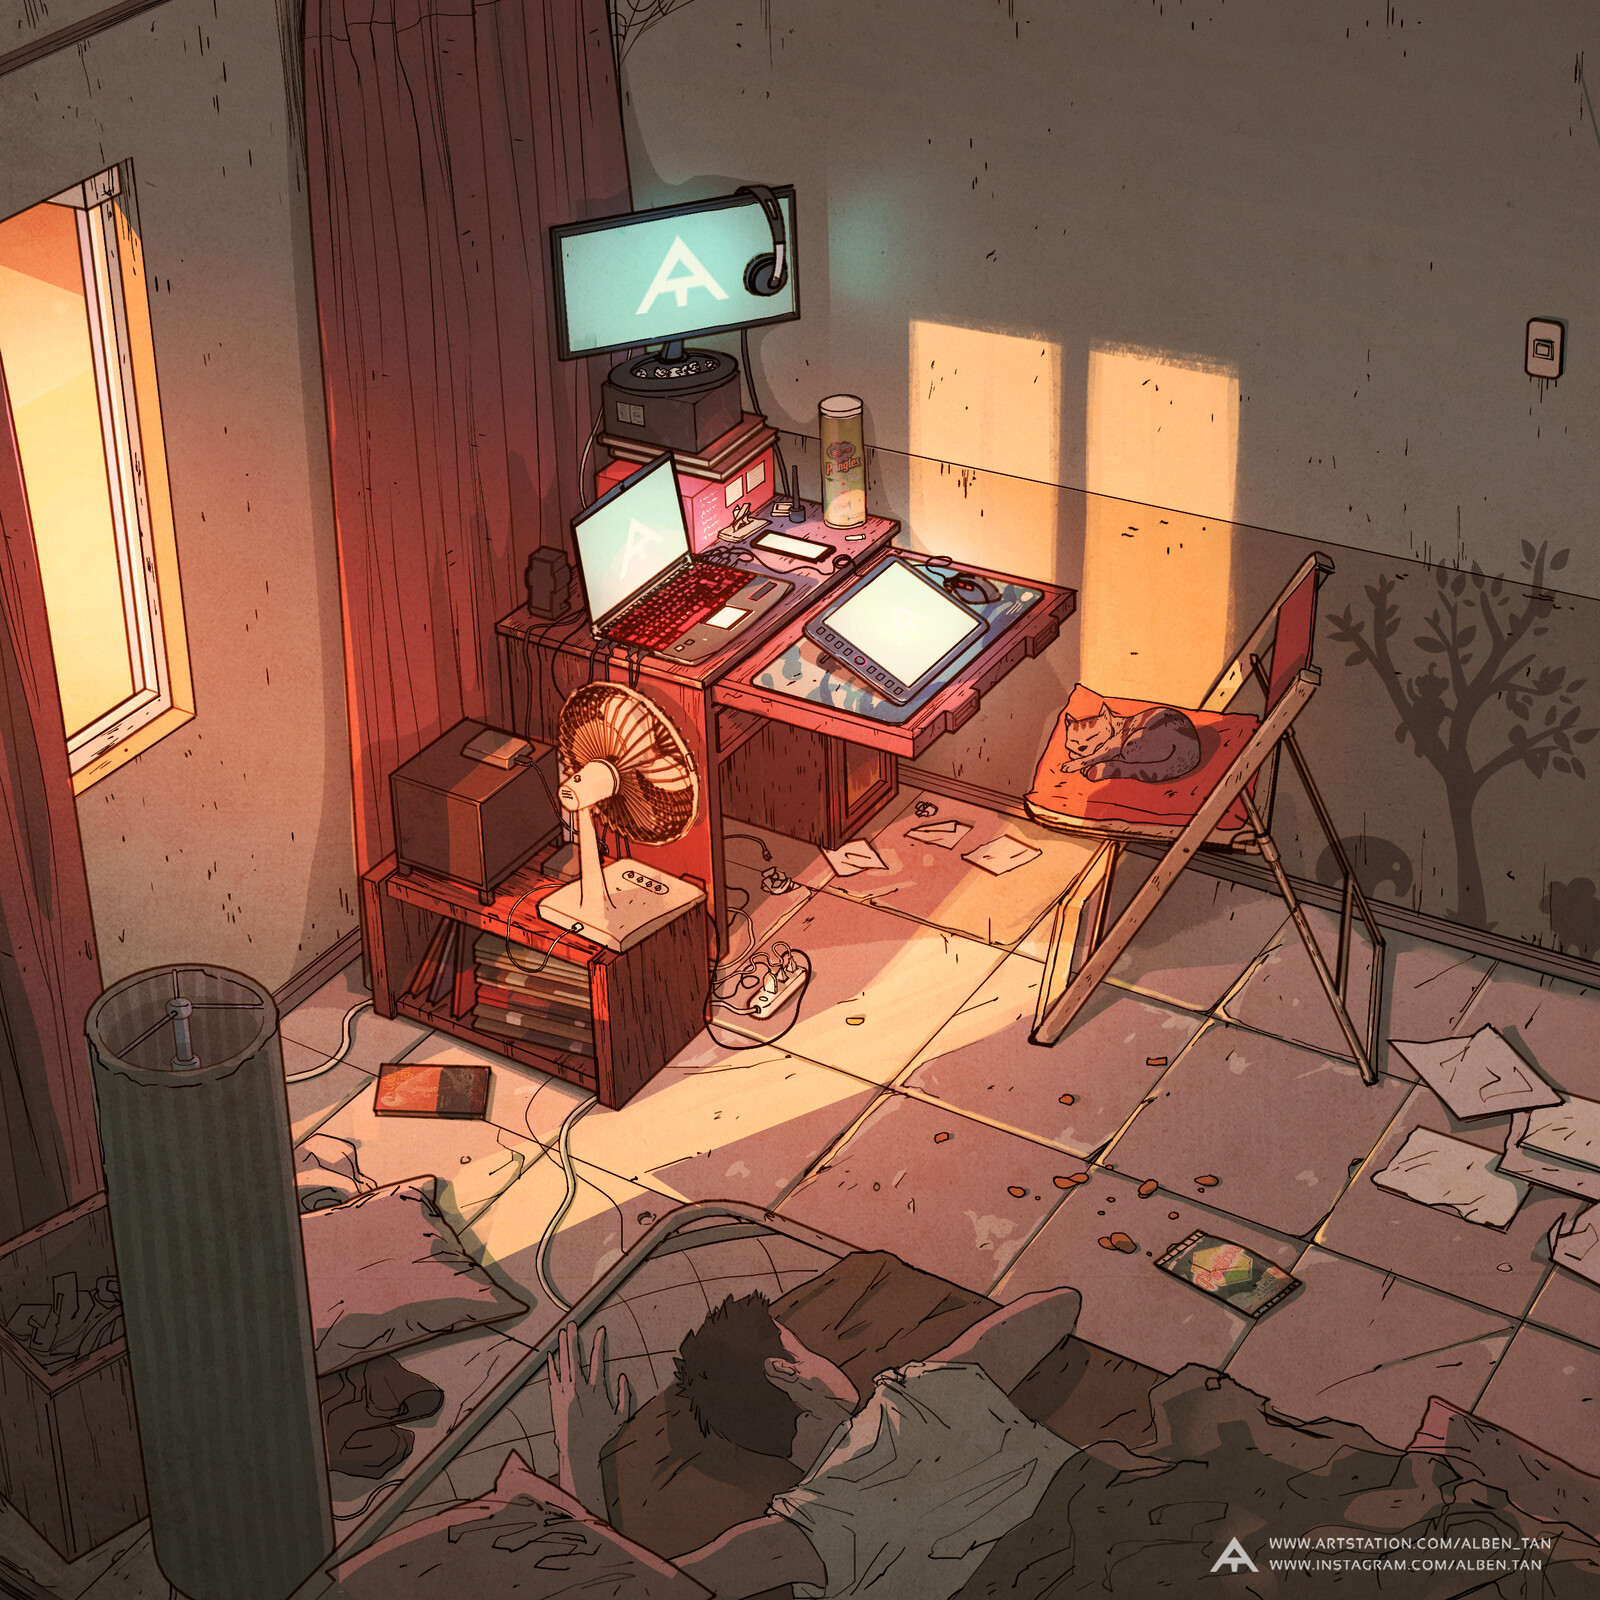 In My Home Jam - My Room